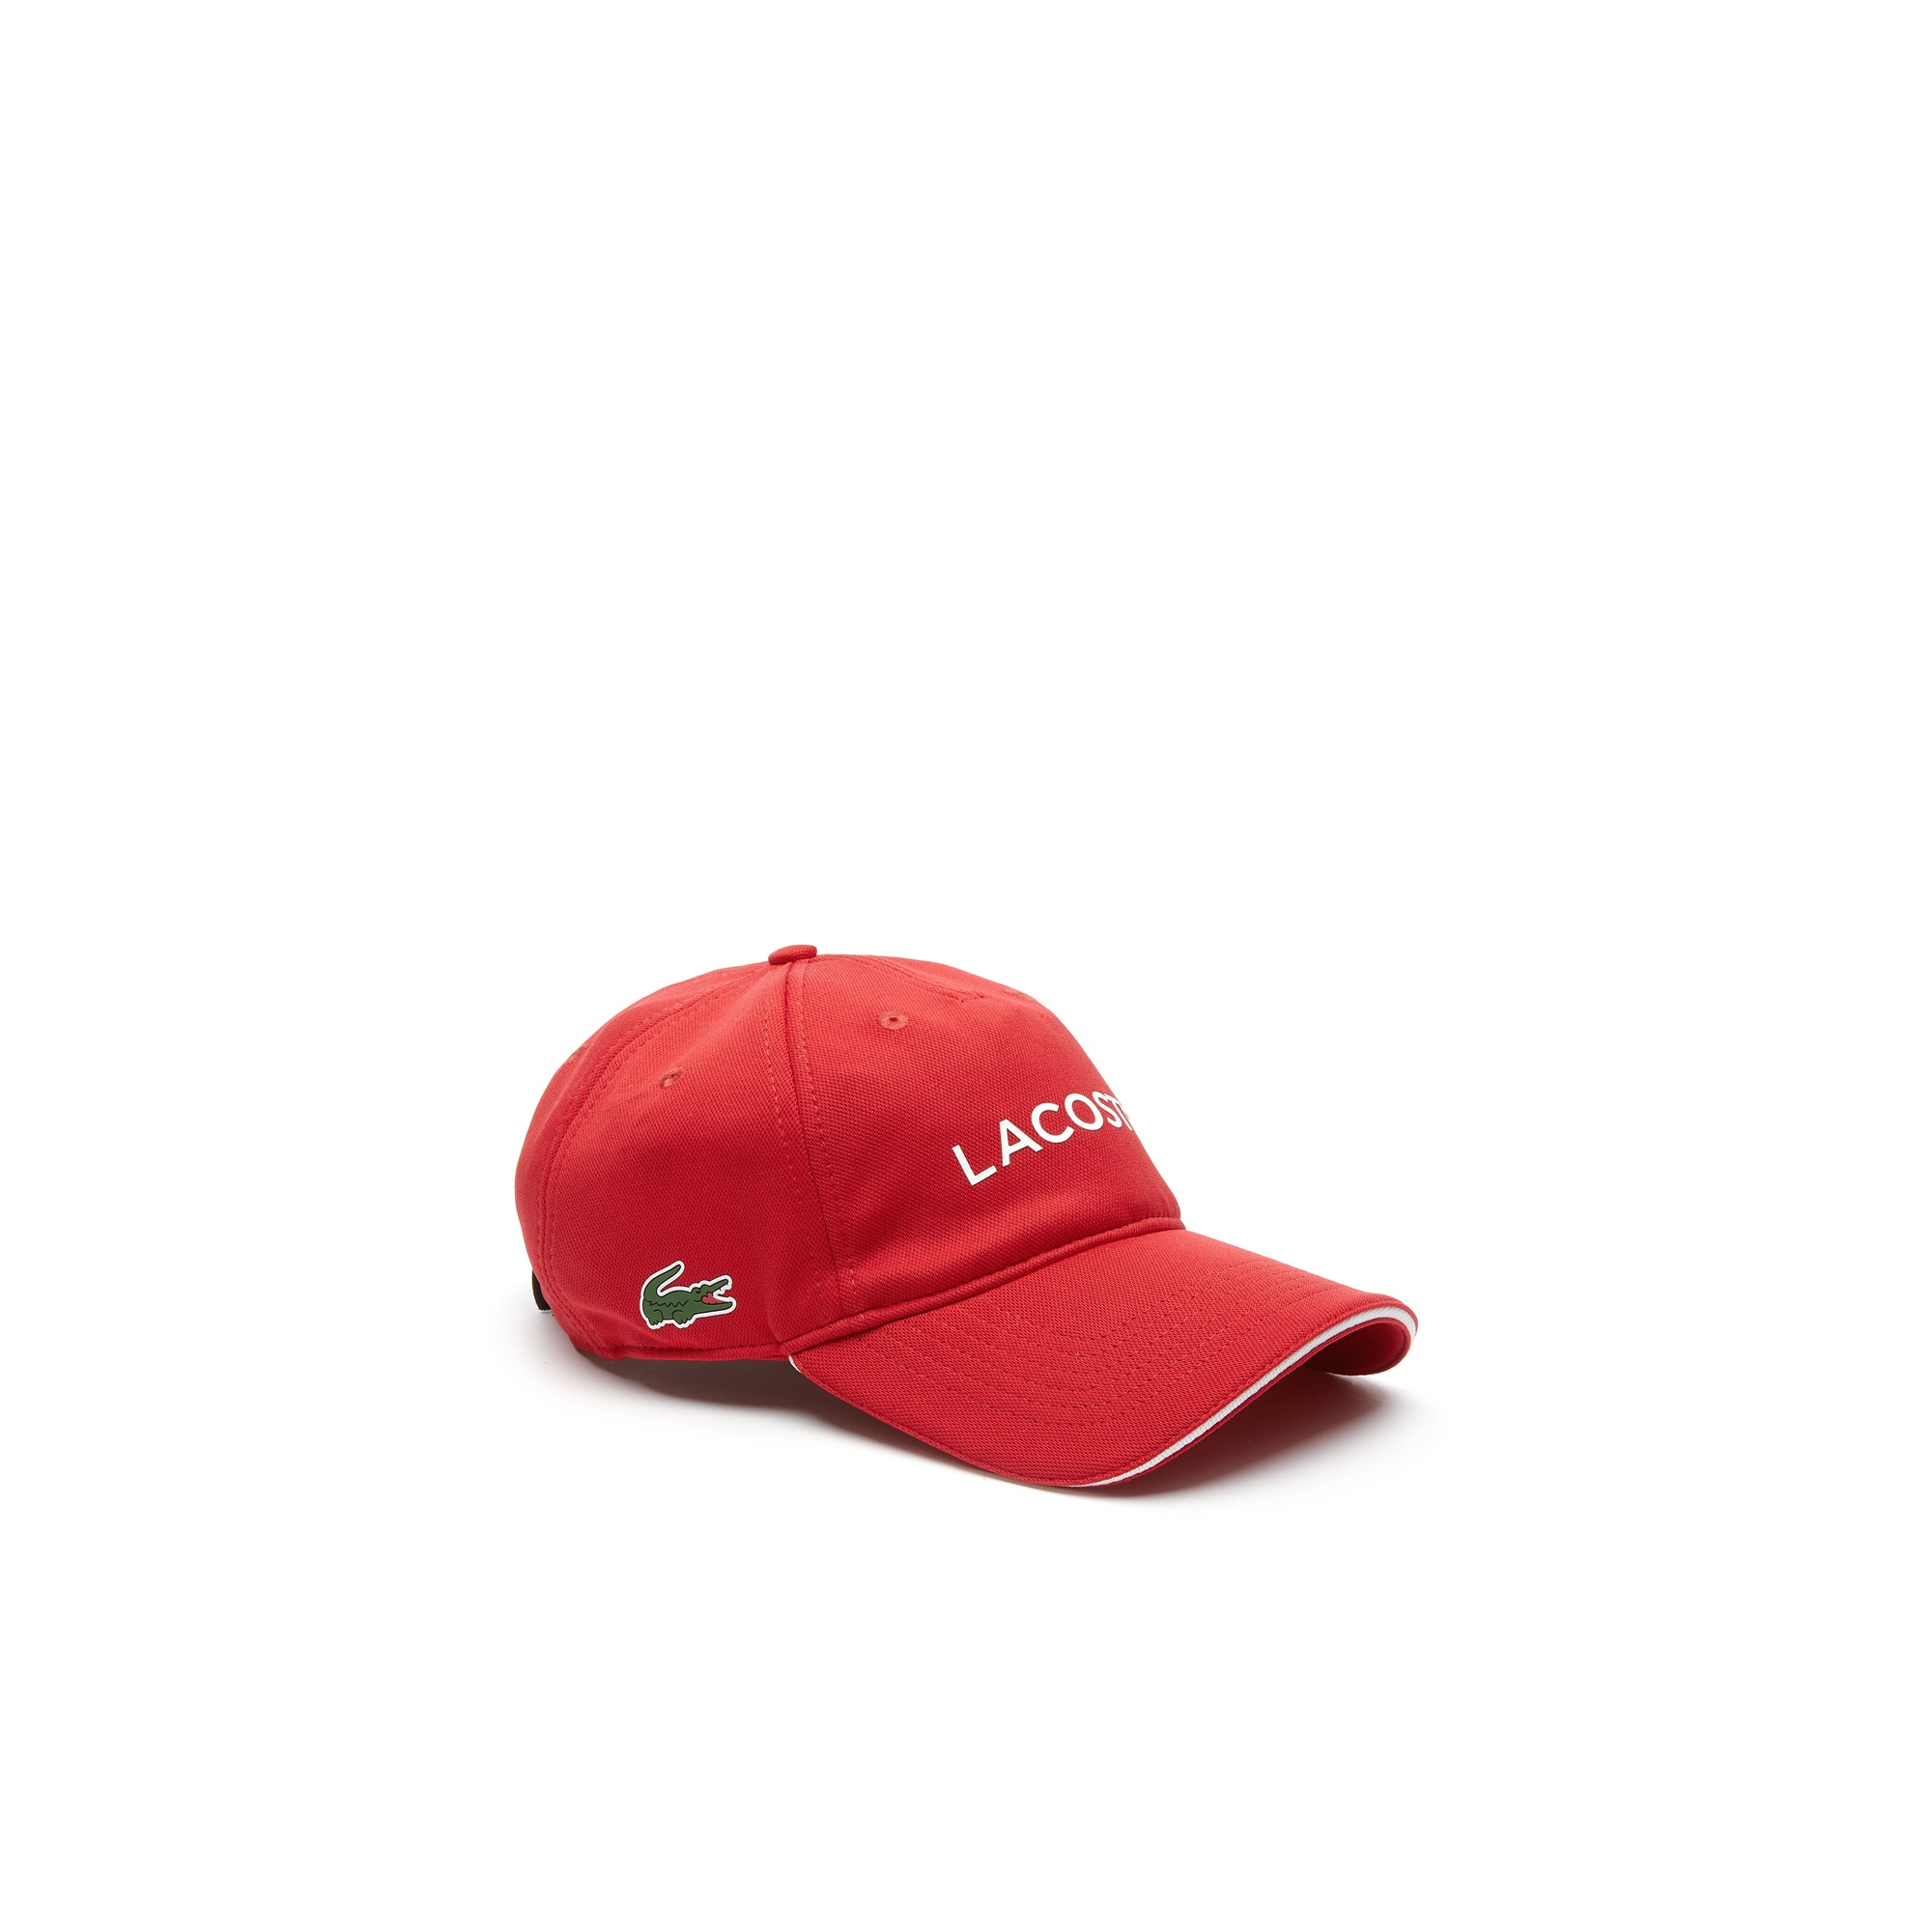 Men's Lacoste SPORT Golf Wording Tech Piqué Cap